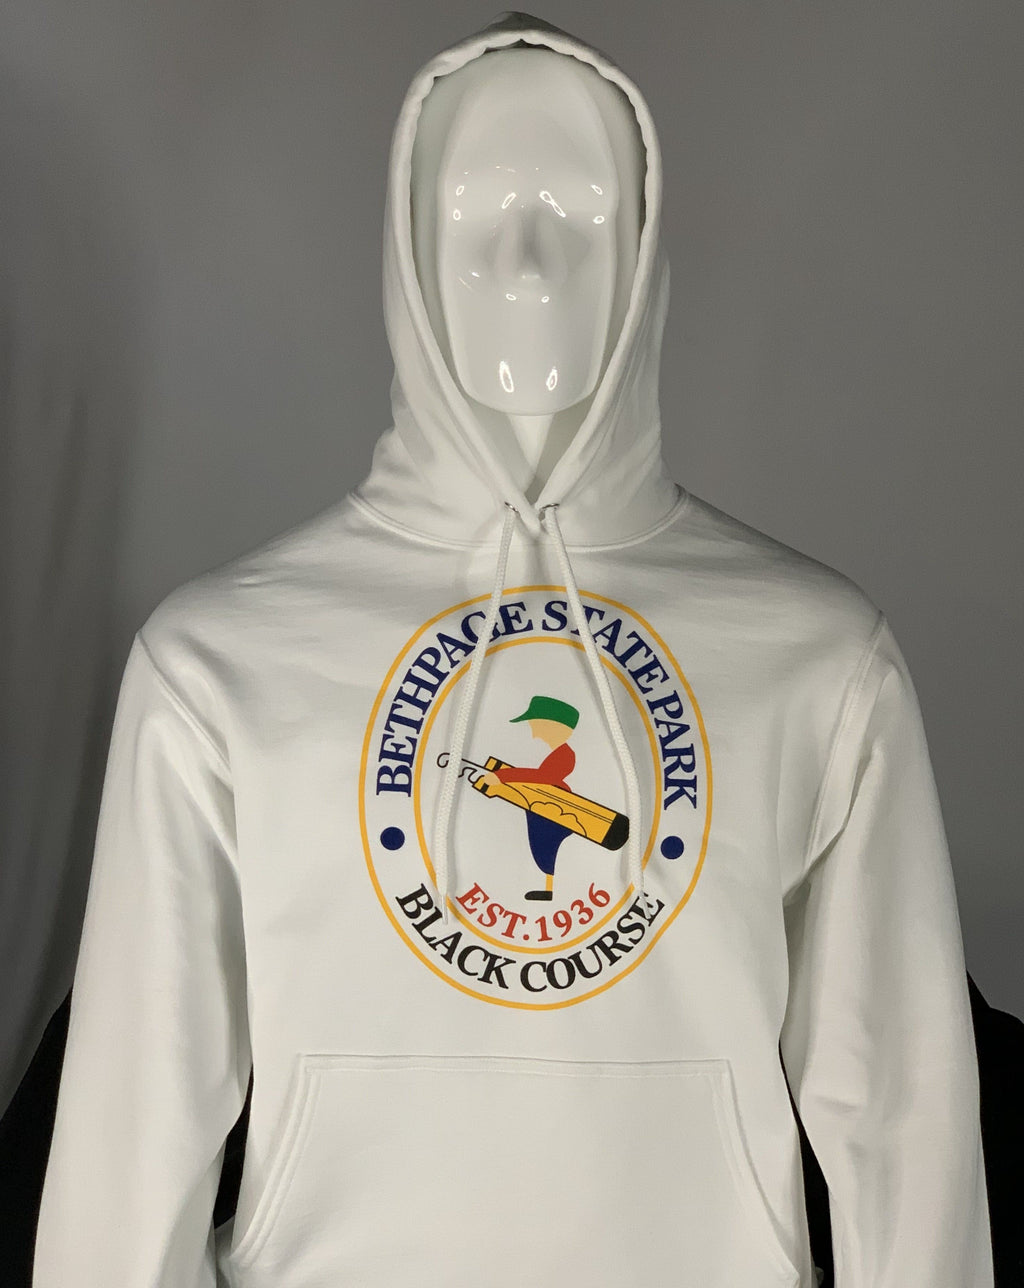 White Sweatshirt Hoodie with the Bethpage Black Course logo